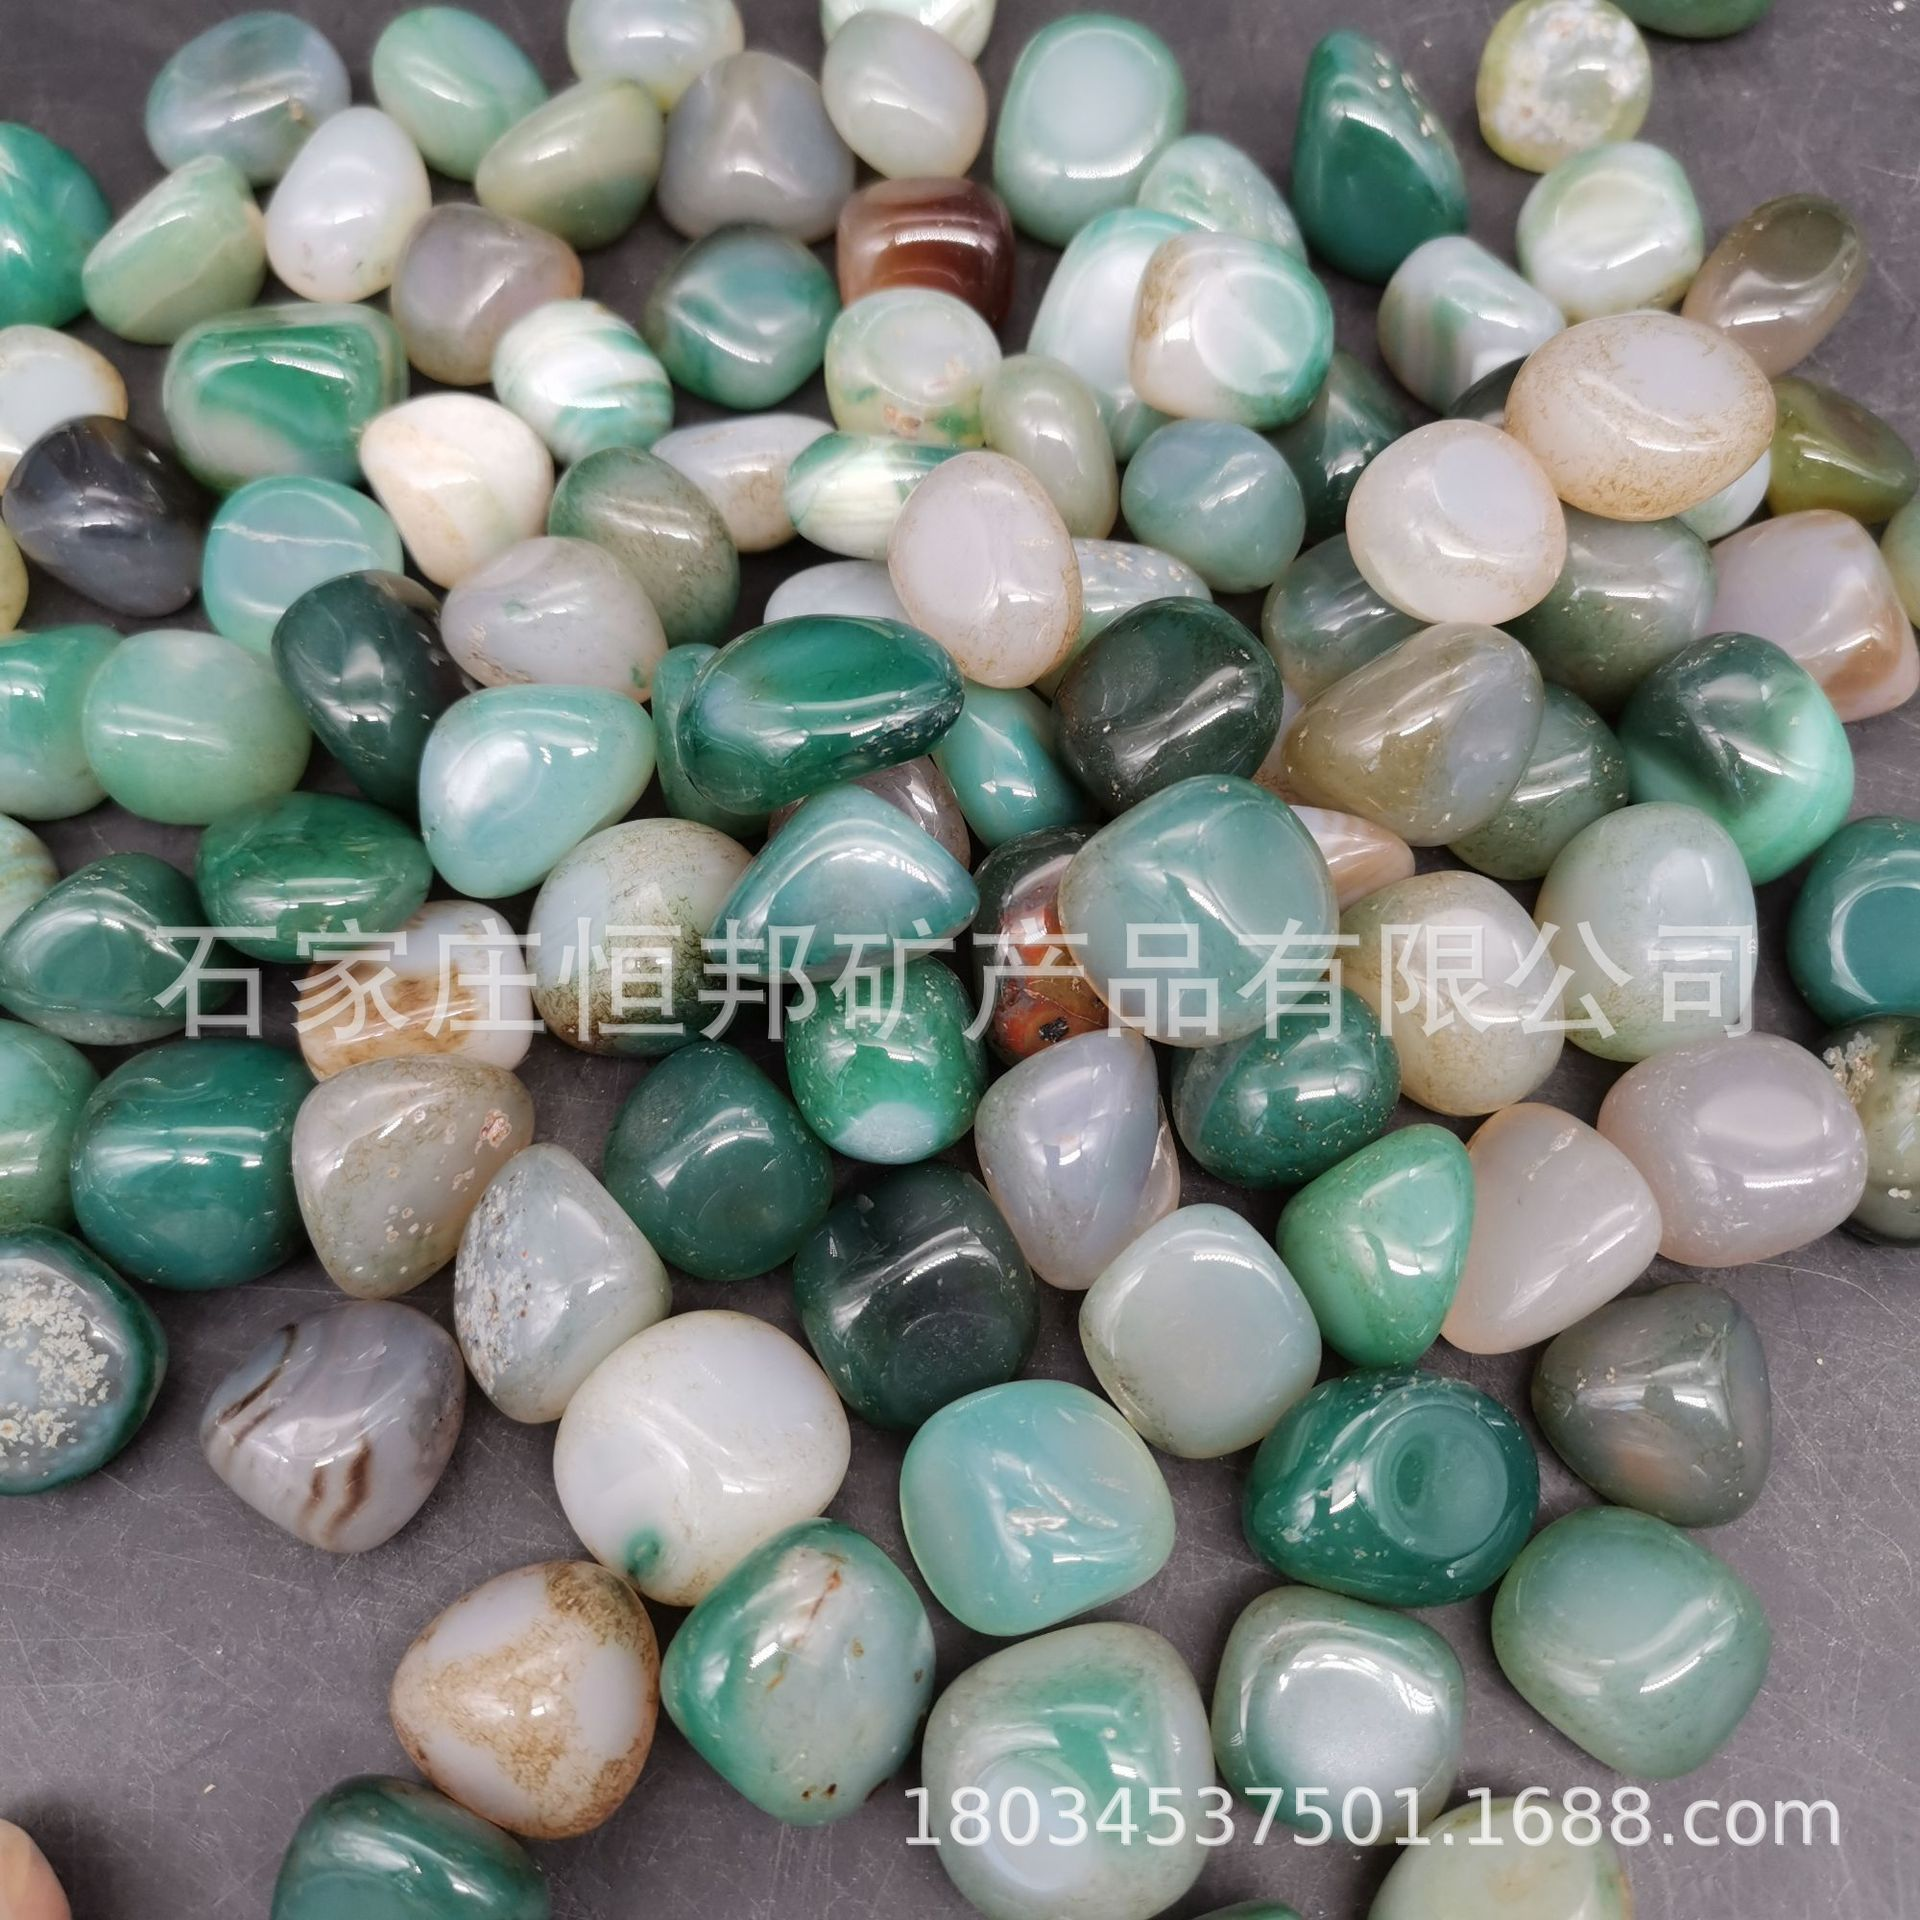 Faux Colored Agate Stones